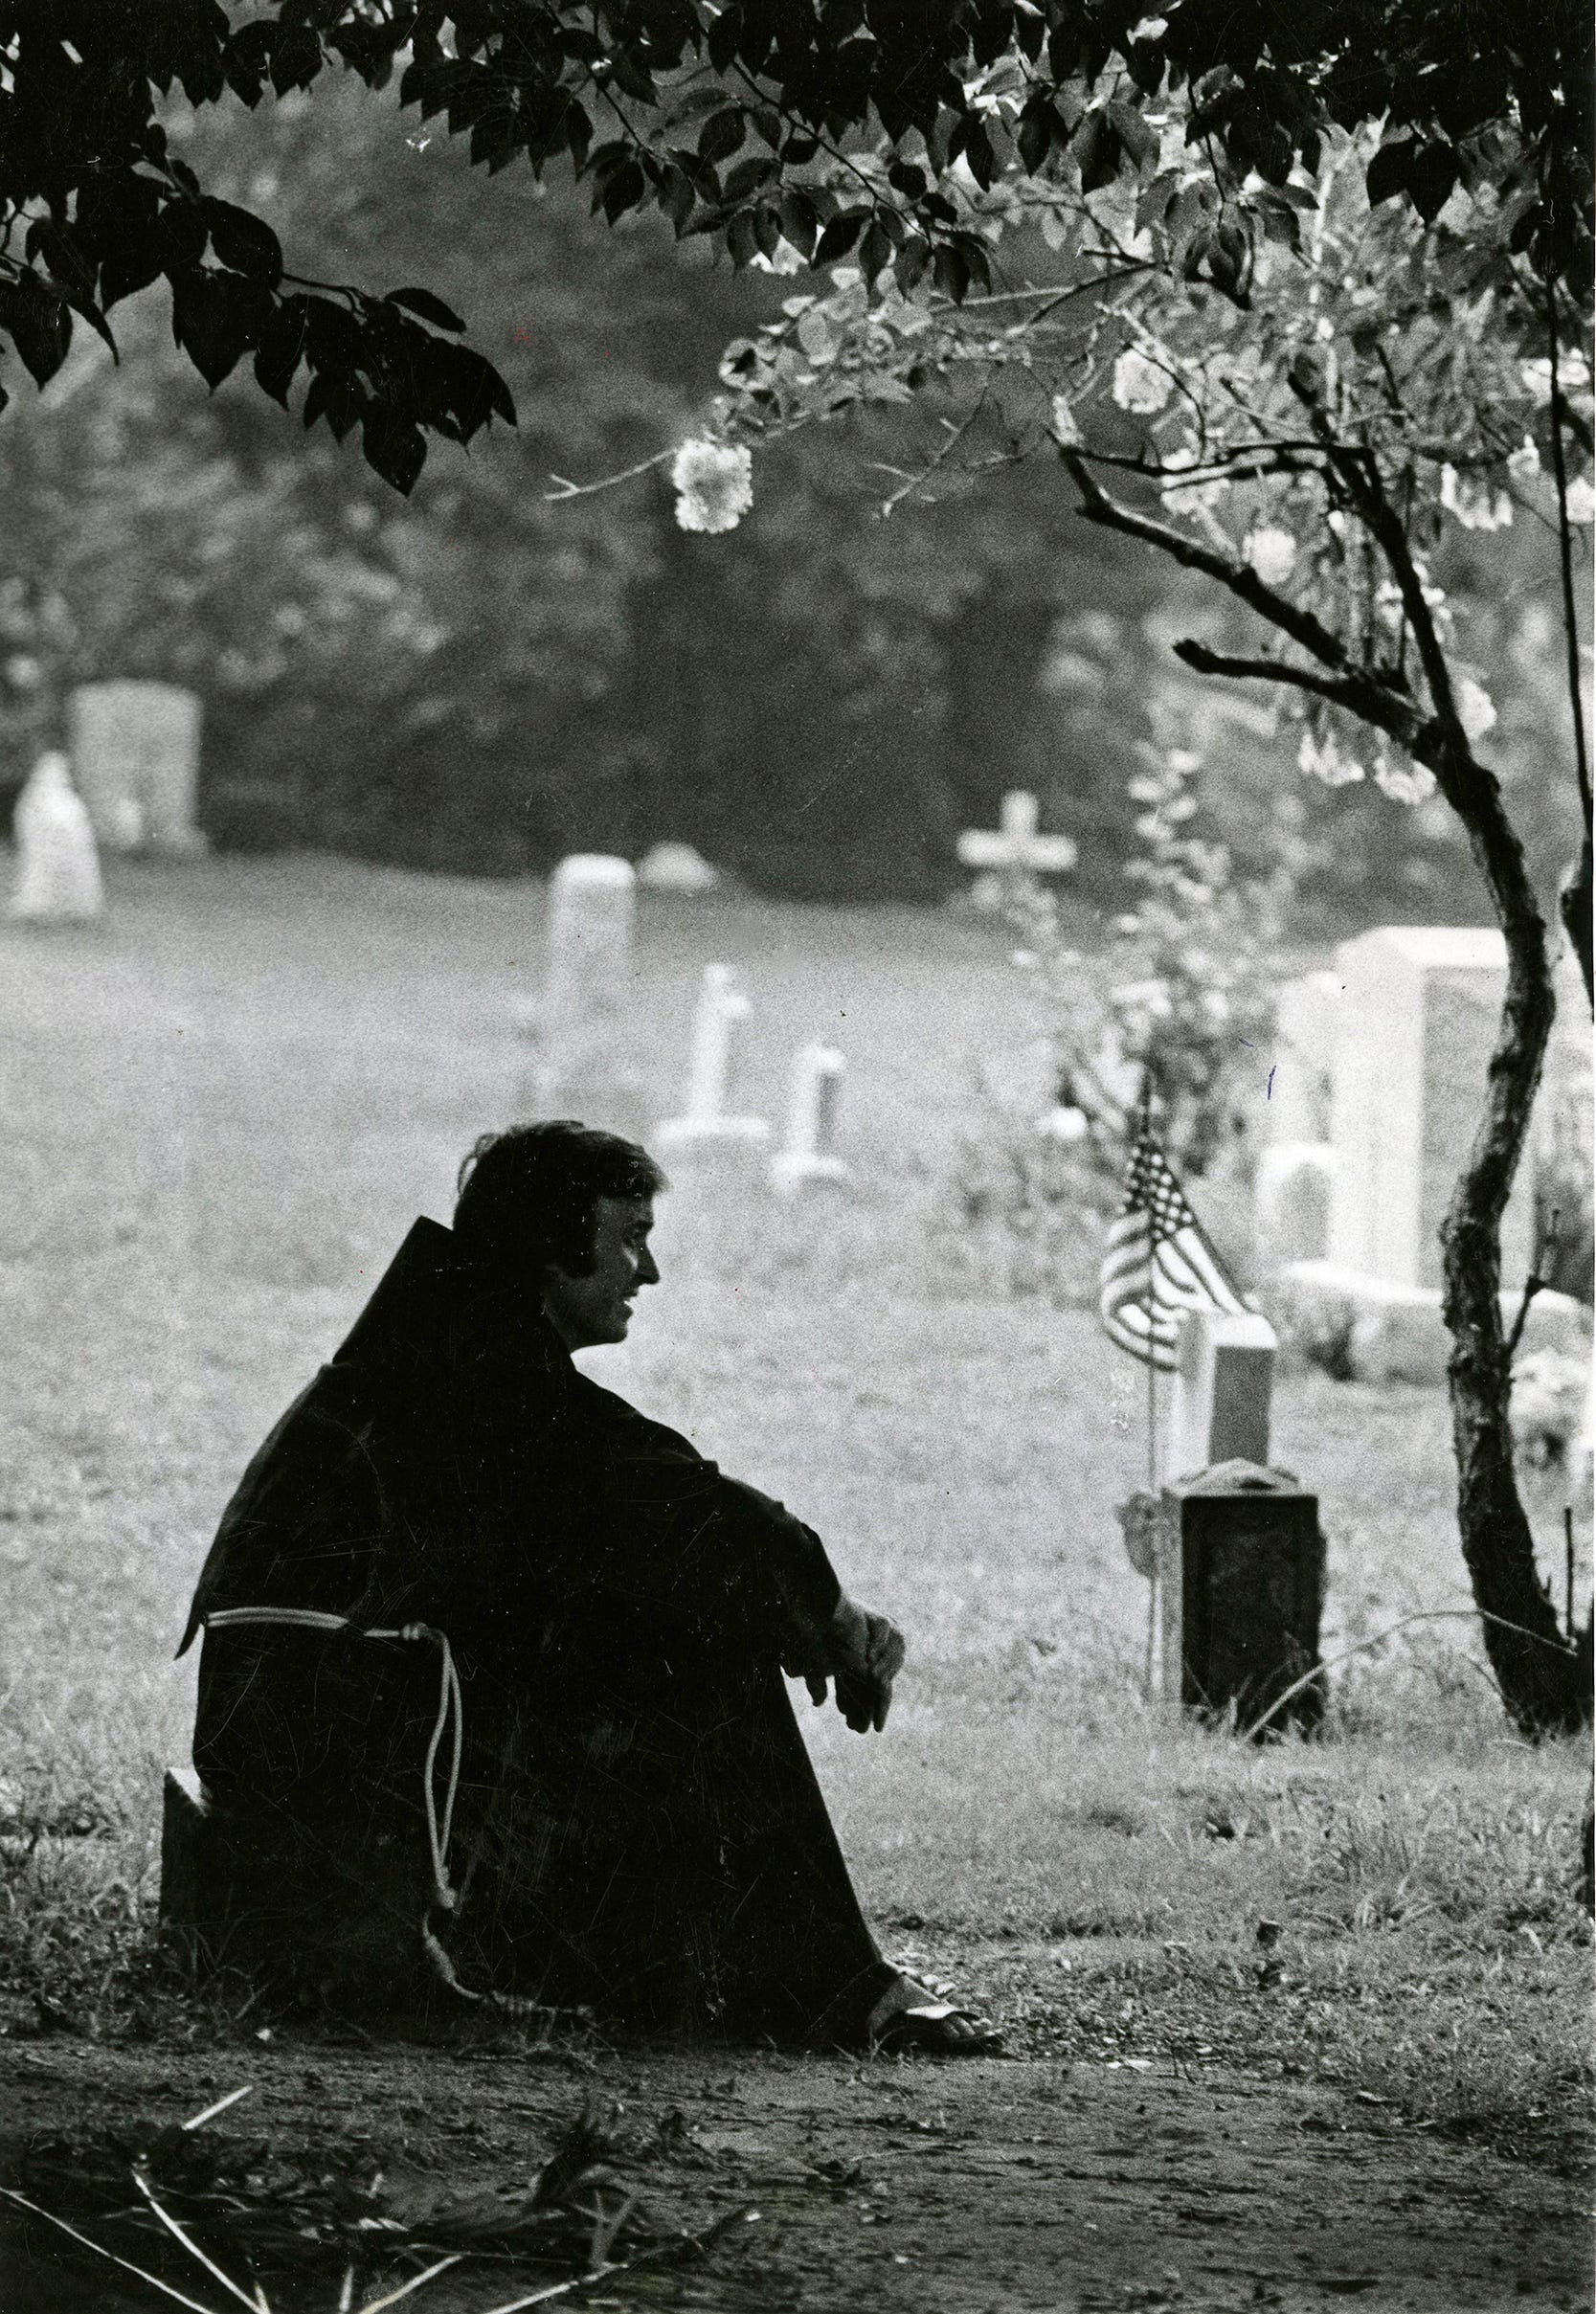 Father Mychal Judge, like St. Francis, the founder of his Franciscan order, tries to spread peace, joy, hope and love as he brings his church to the people - whether they are cemetery workers in Lyndhurst, N.J, teens relaxing on the friary lawn, or neighborhood youngsters. Wherever he goes, the brown-habited friar, seen here on August 27, 1974, is greeted affectionately as Father Mychal